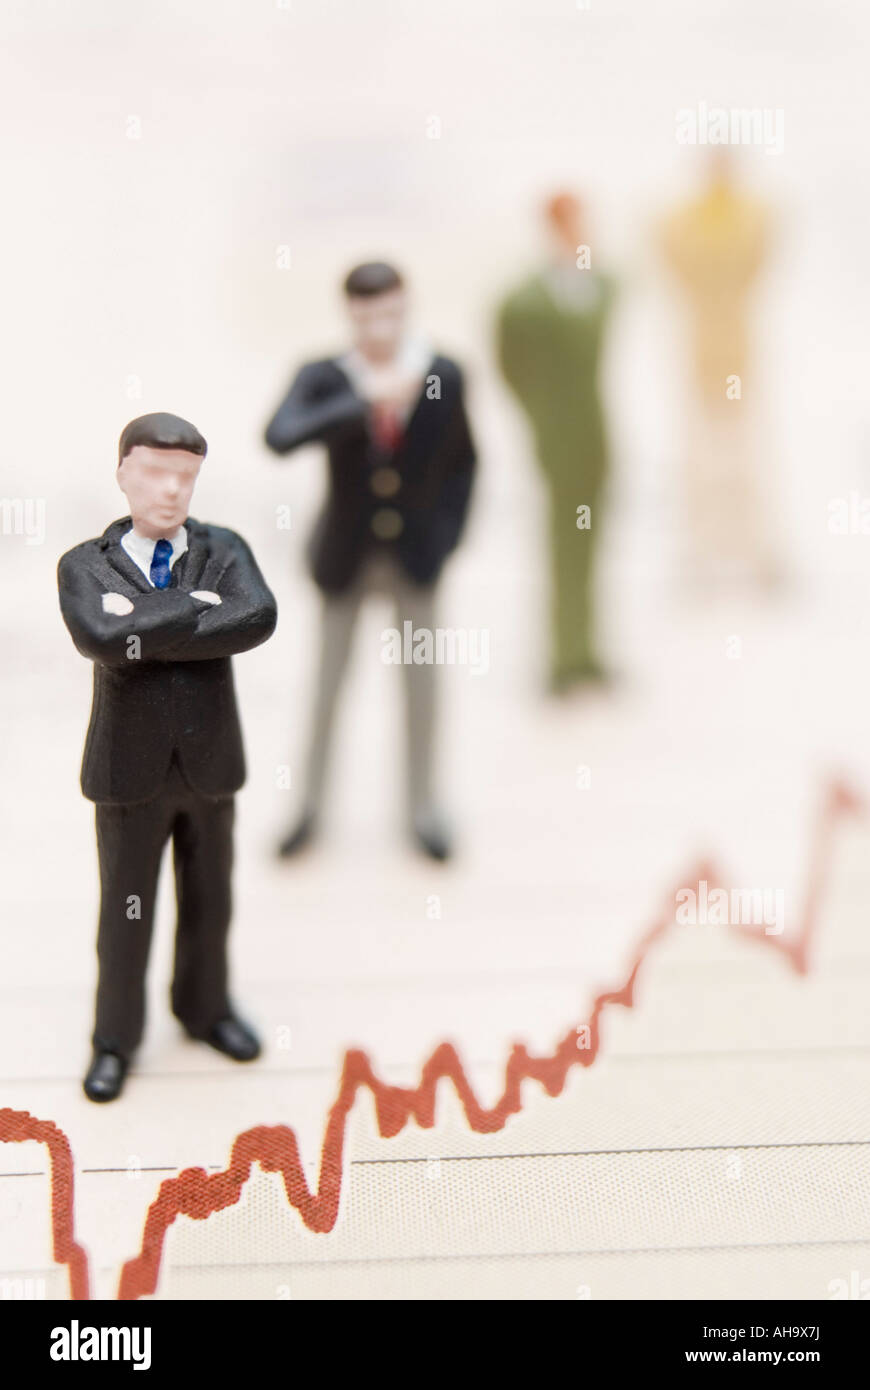 Businessmen standing on graph - Stock Image